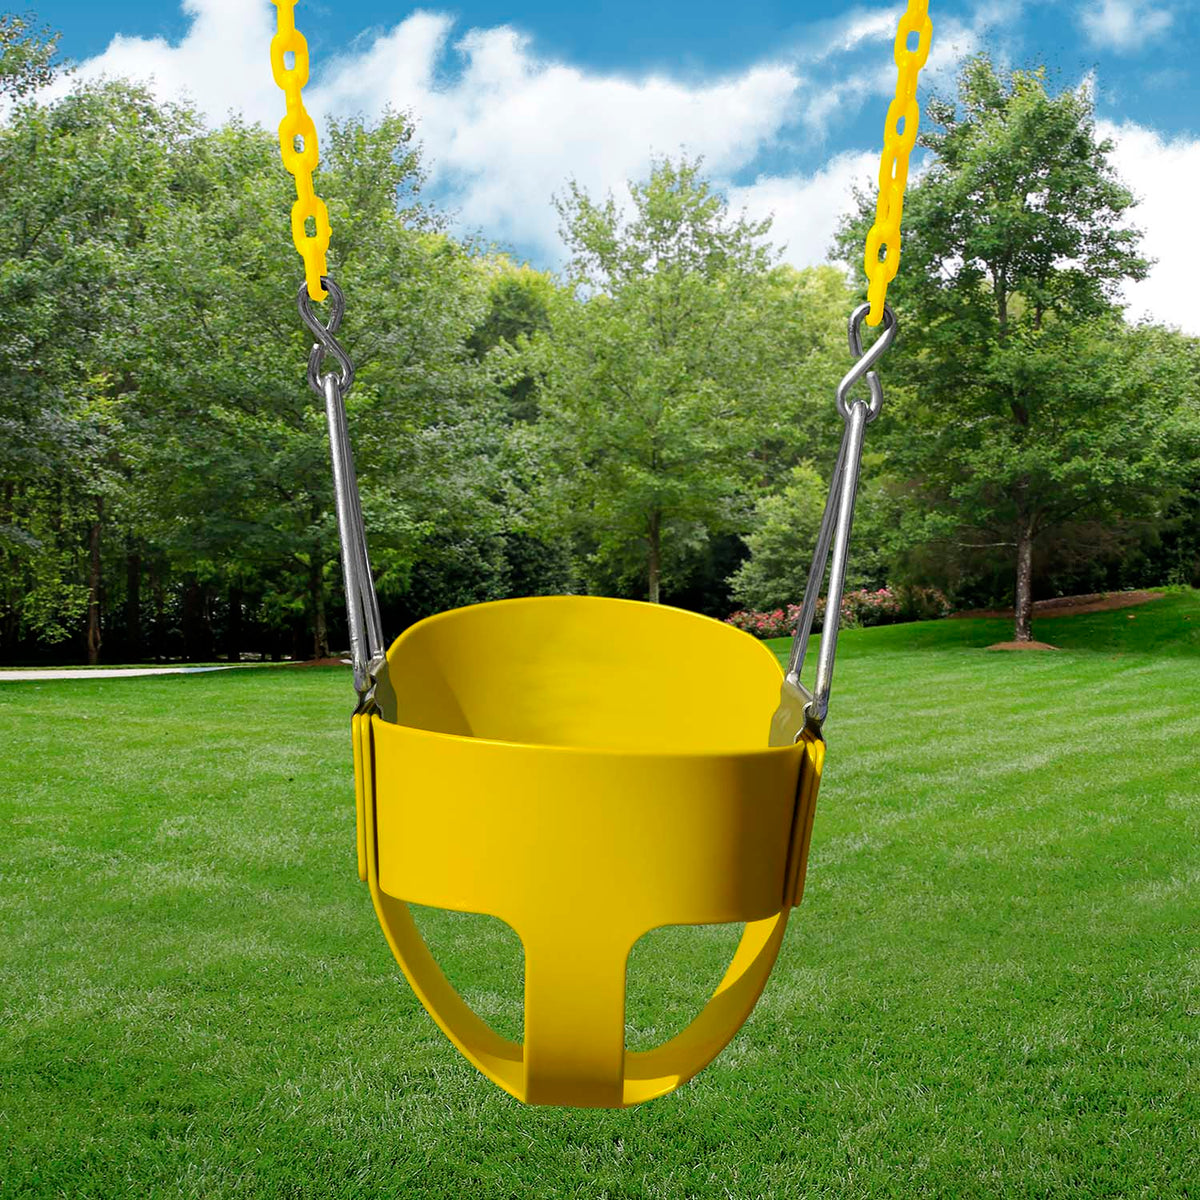 Gorilla-Playsets-Full-Bucket-Swing-Yellow